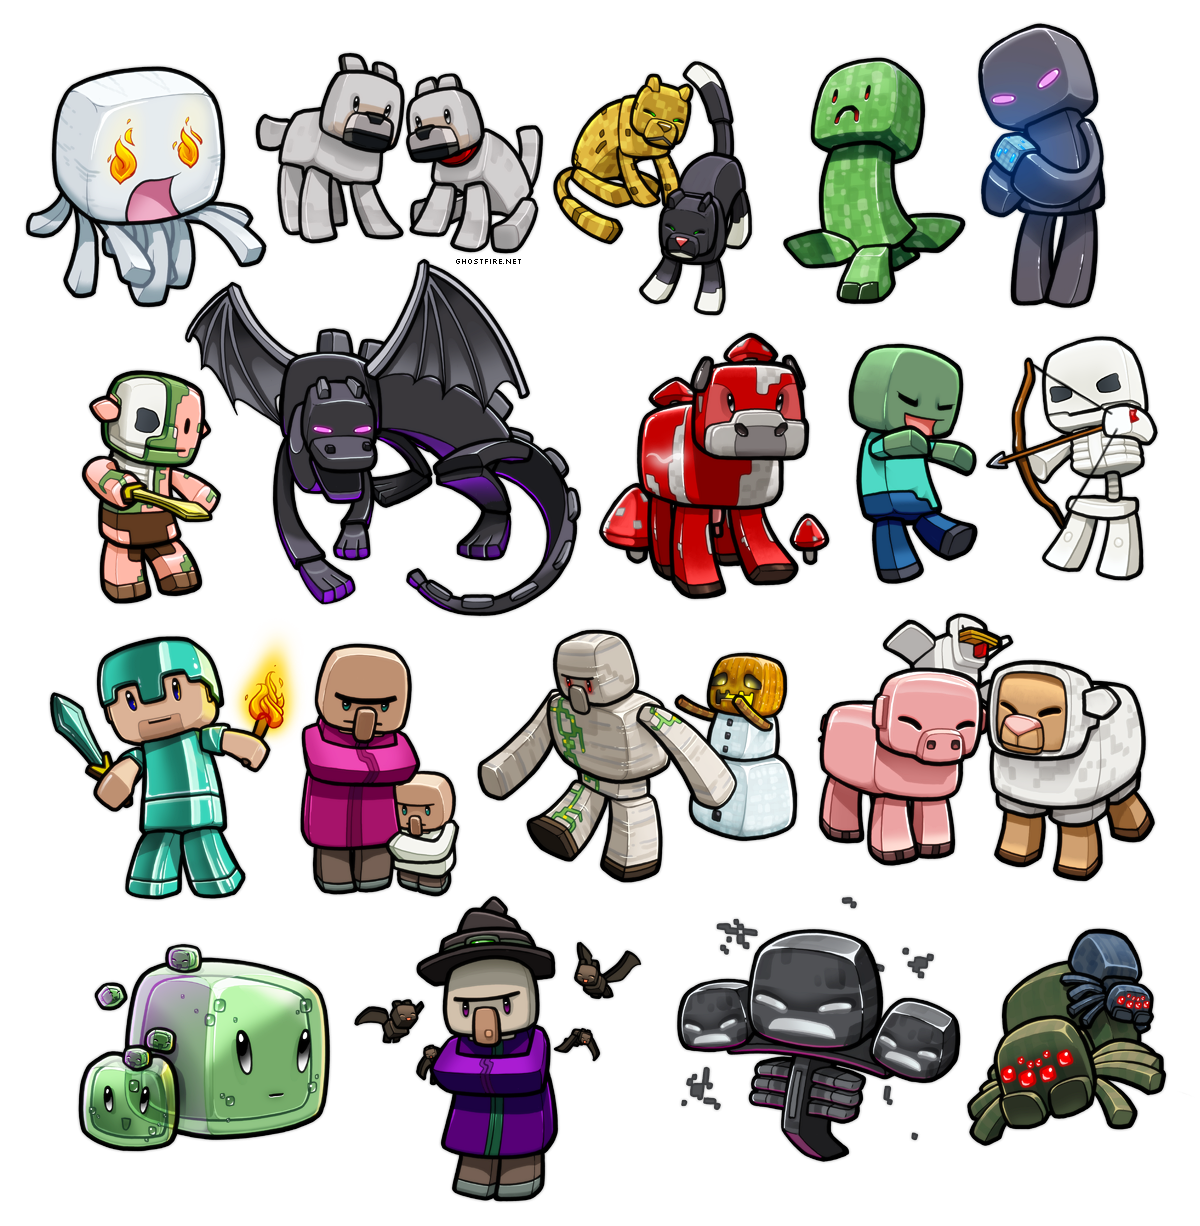 Image - Minecraft Chibies 3.png | Minecraft Wiki | FANDOM powered ... for All Minecraft Characters  103wja